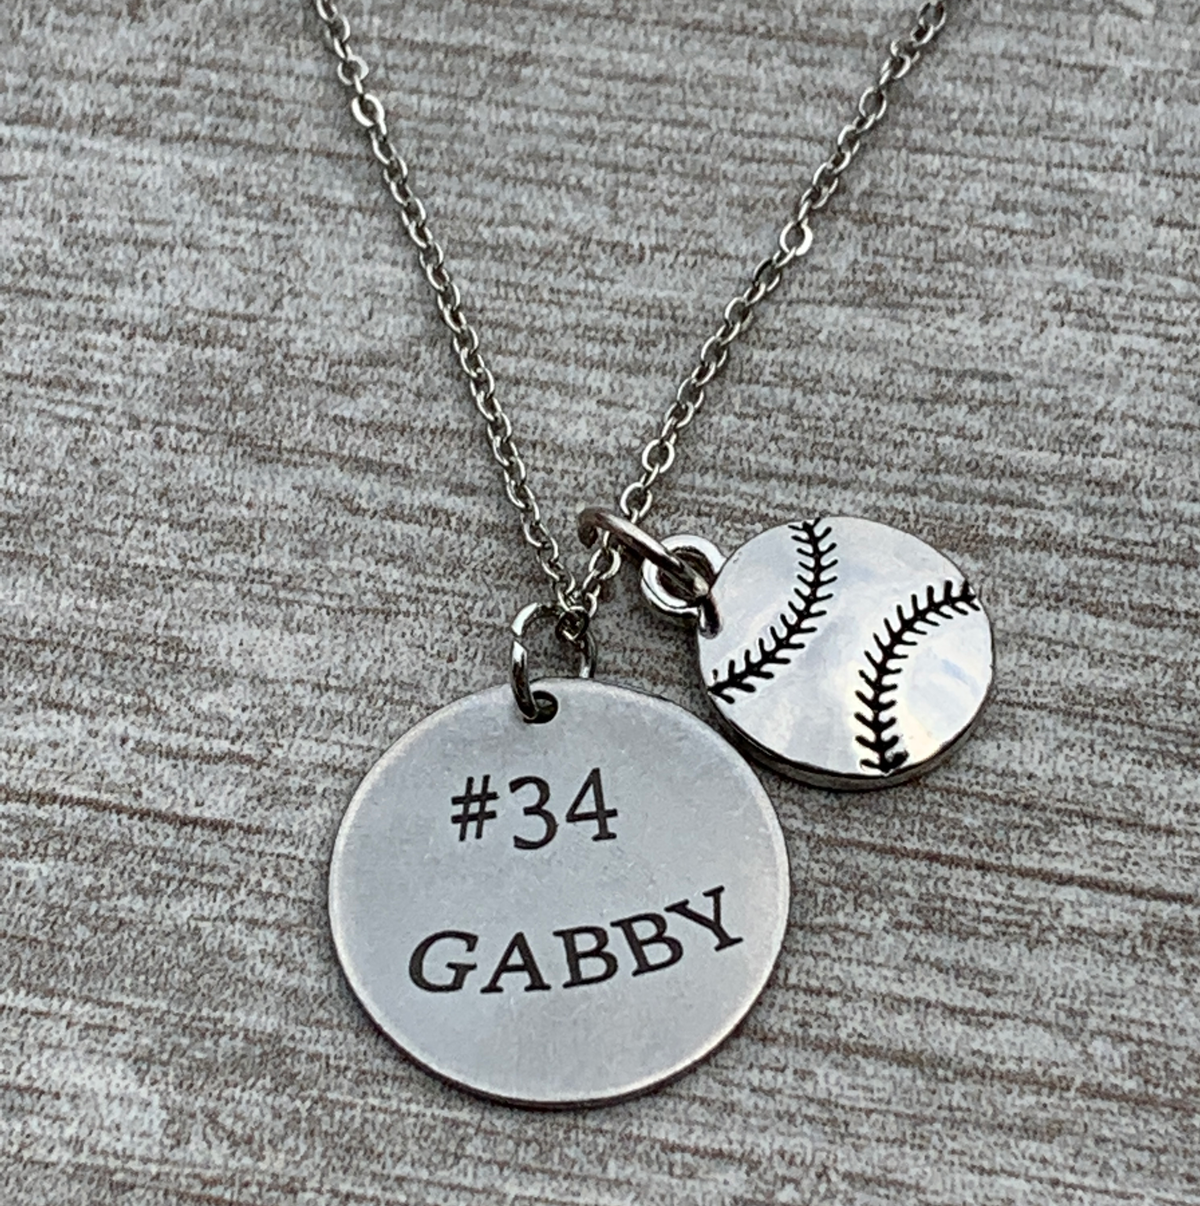 Personalized Engraved Softball Necklace